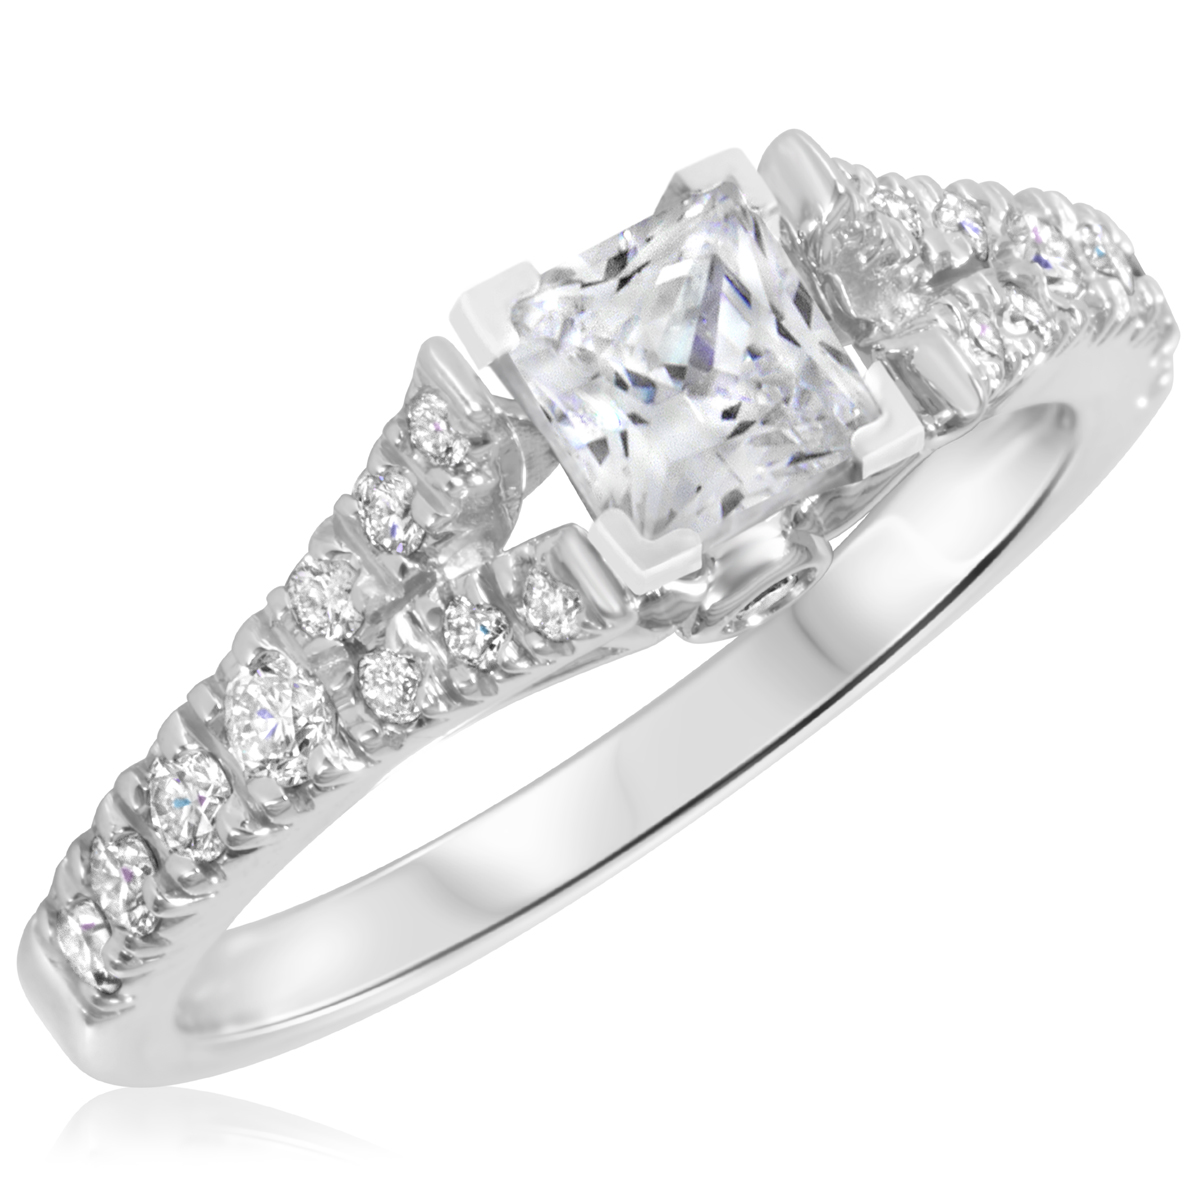 1 1/6 CT. T.W. Diamond Ladies Engagement Ring 10K White Gold- Size 8